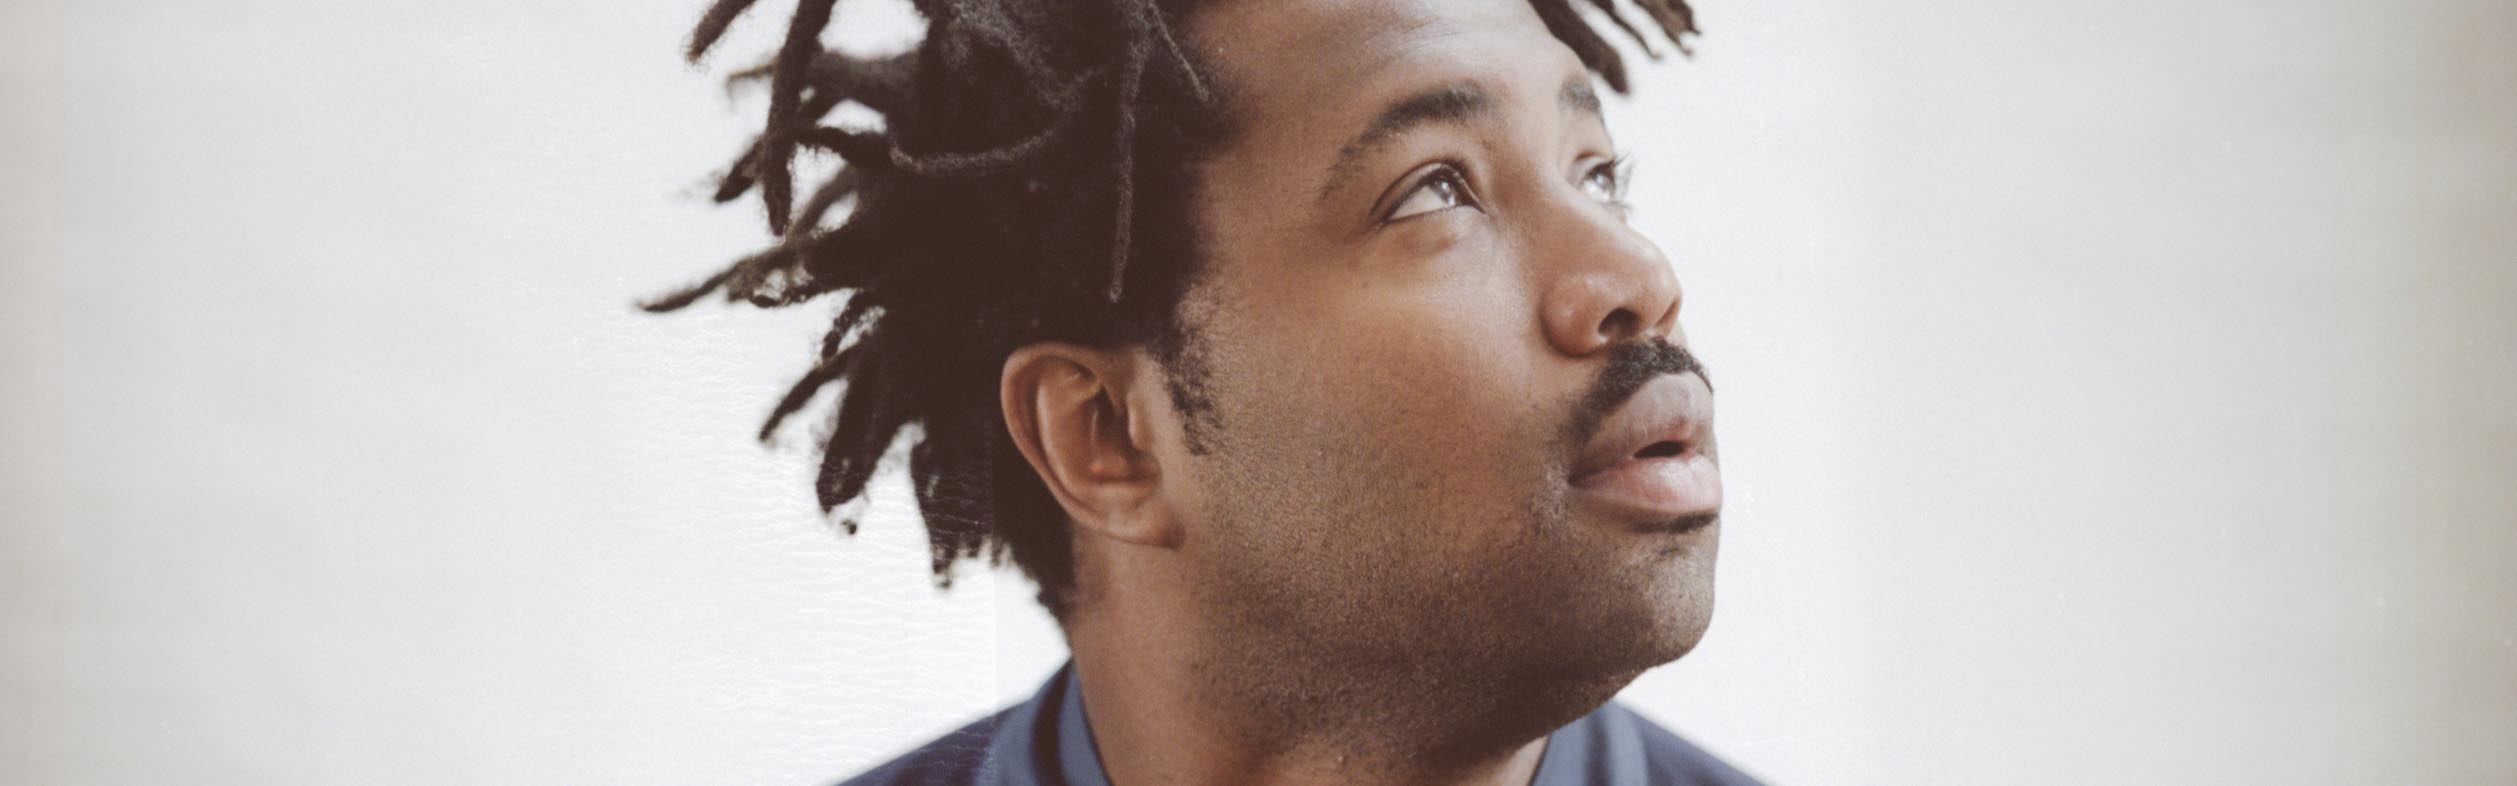 Sampha Blood On Me Launch Image small